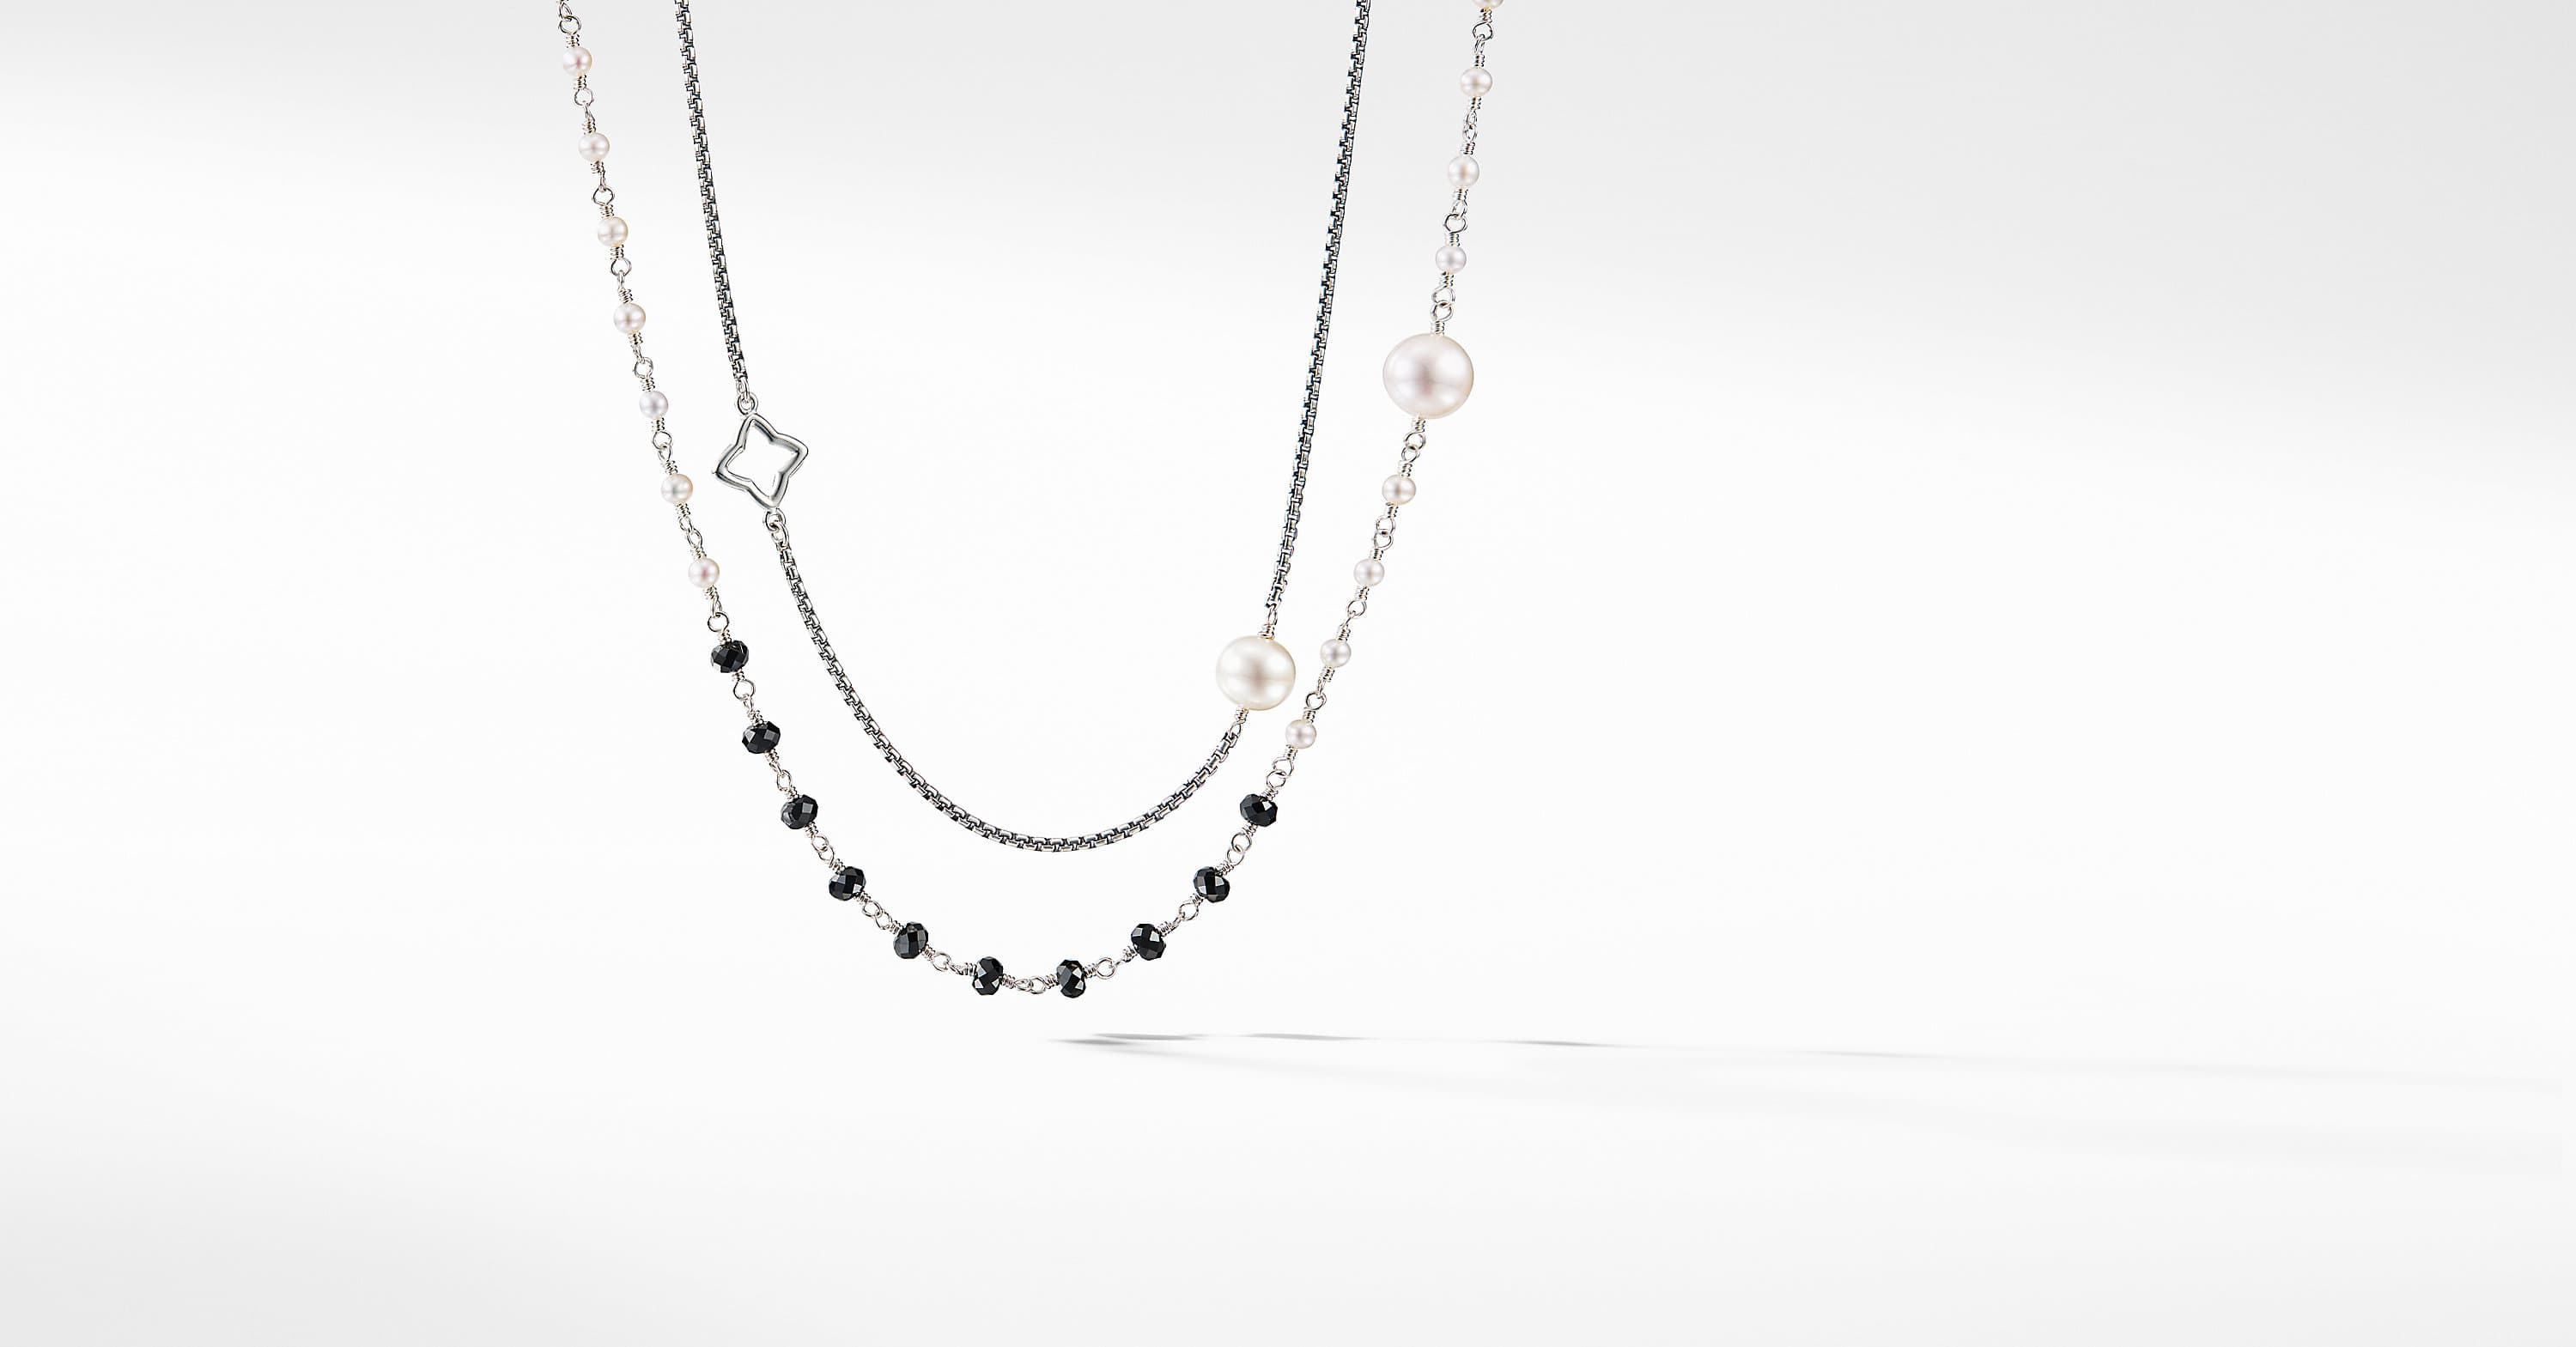 Oceanica Two-Row Chain Necklace